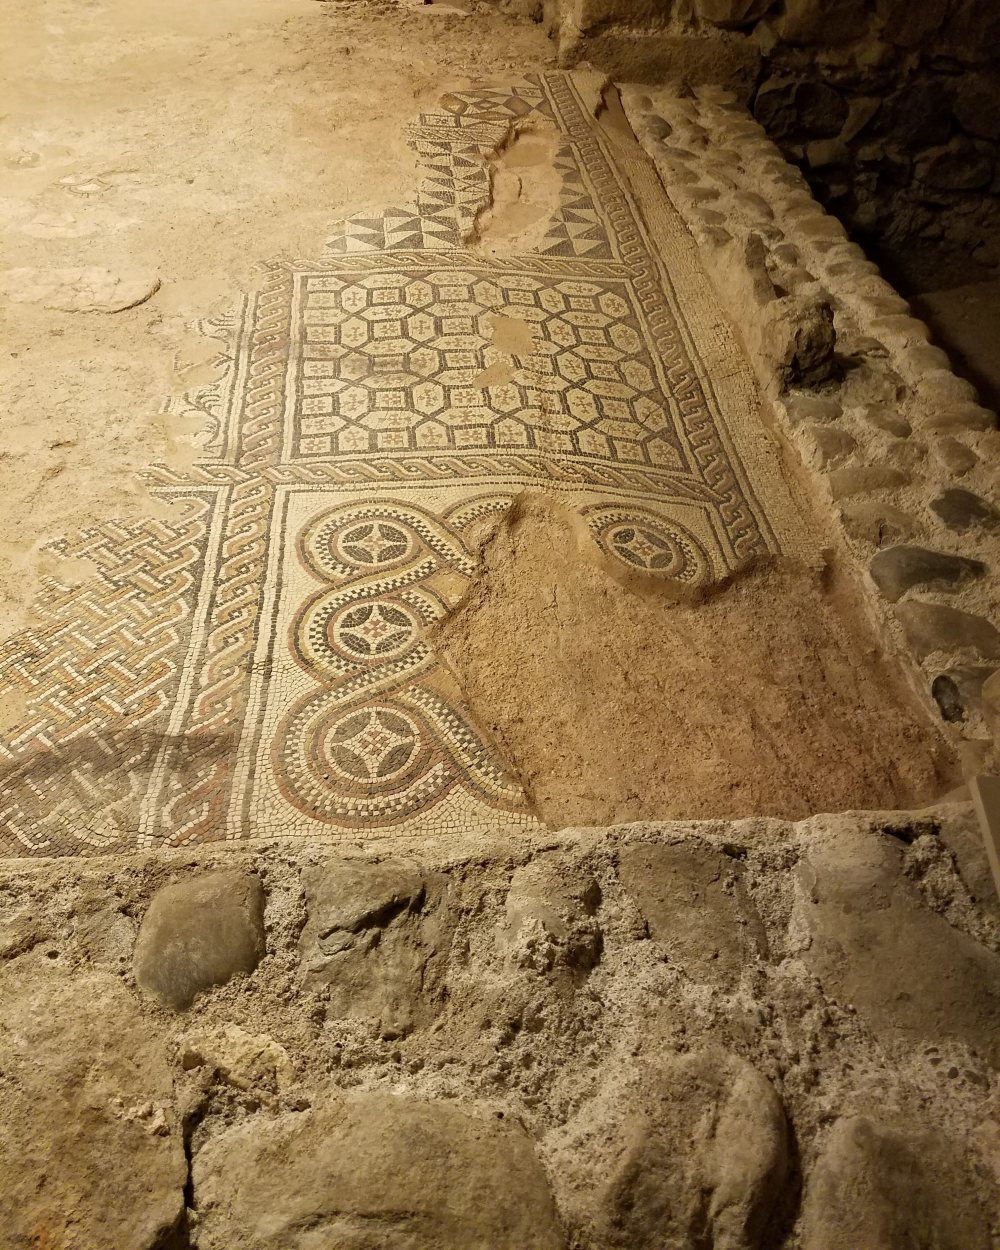 Mosaic Tiles Found Below St. Pierre's Cathedral